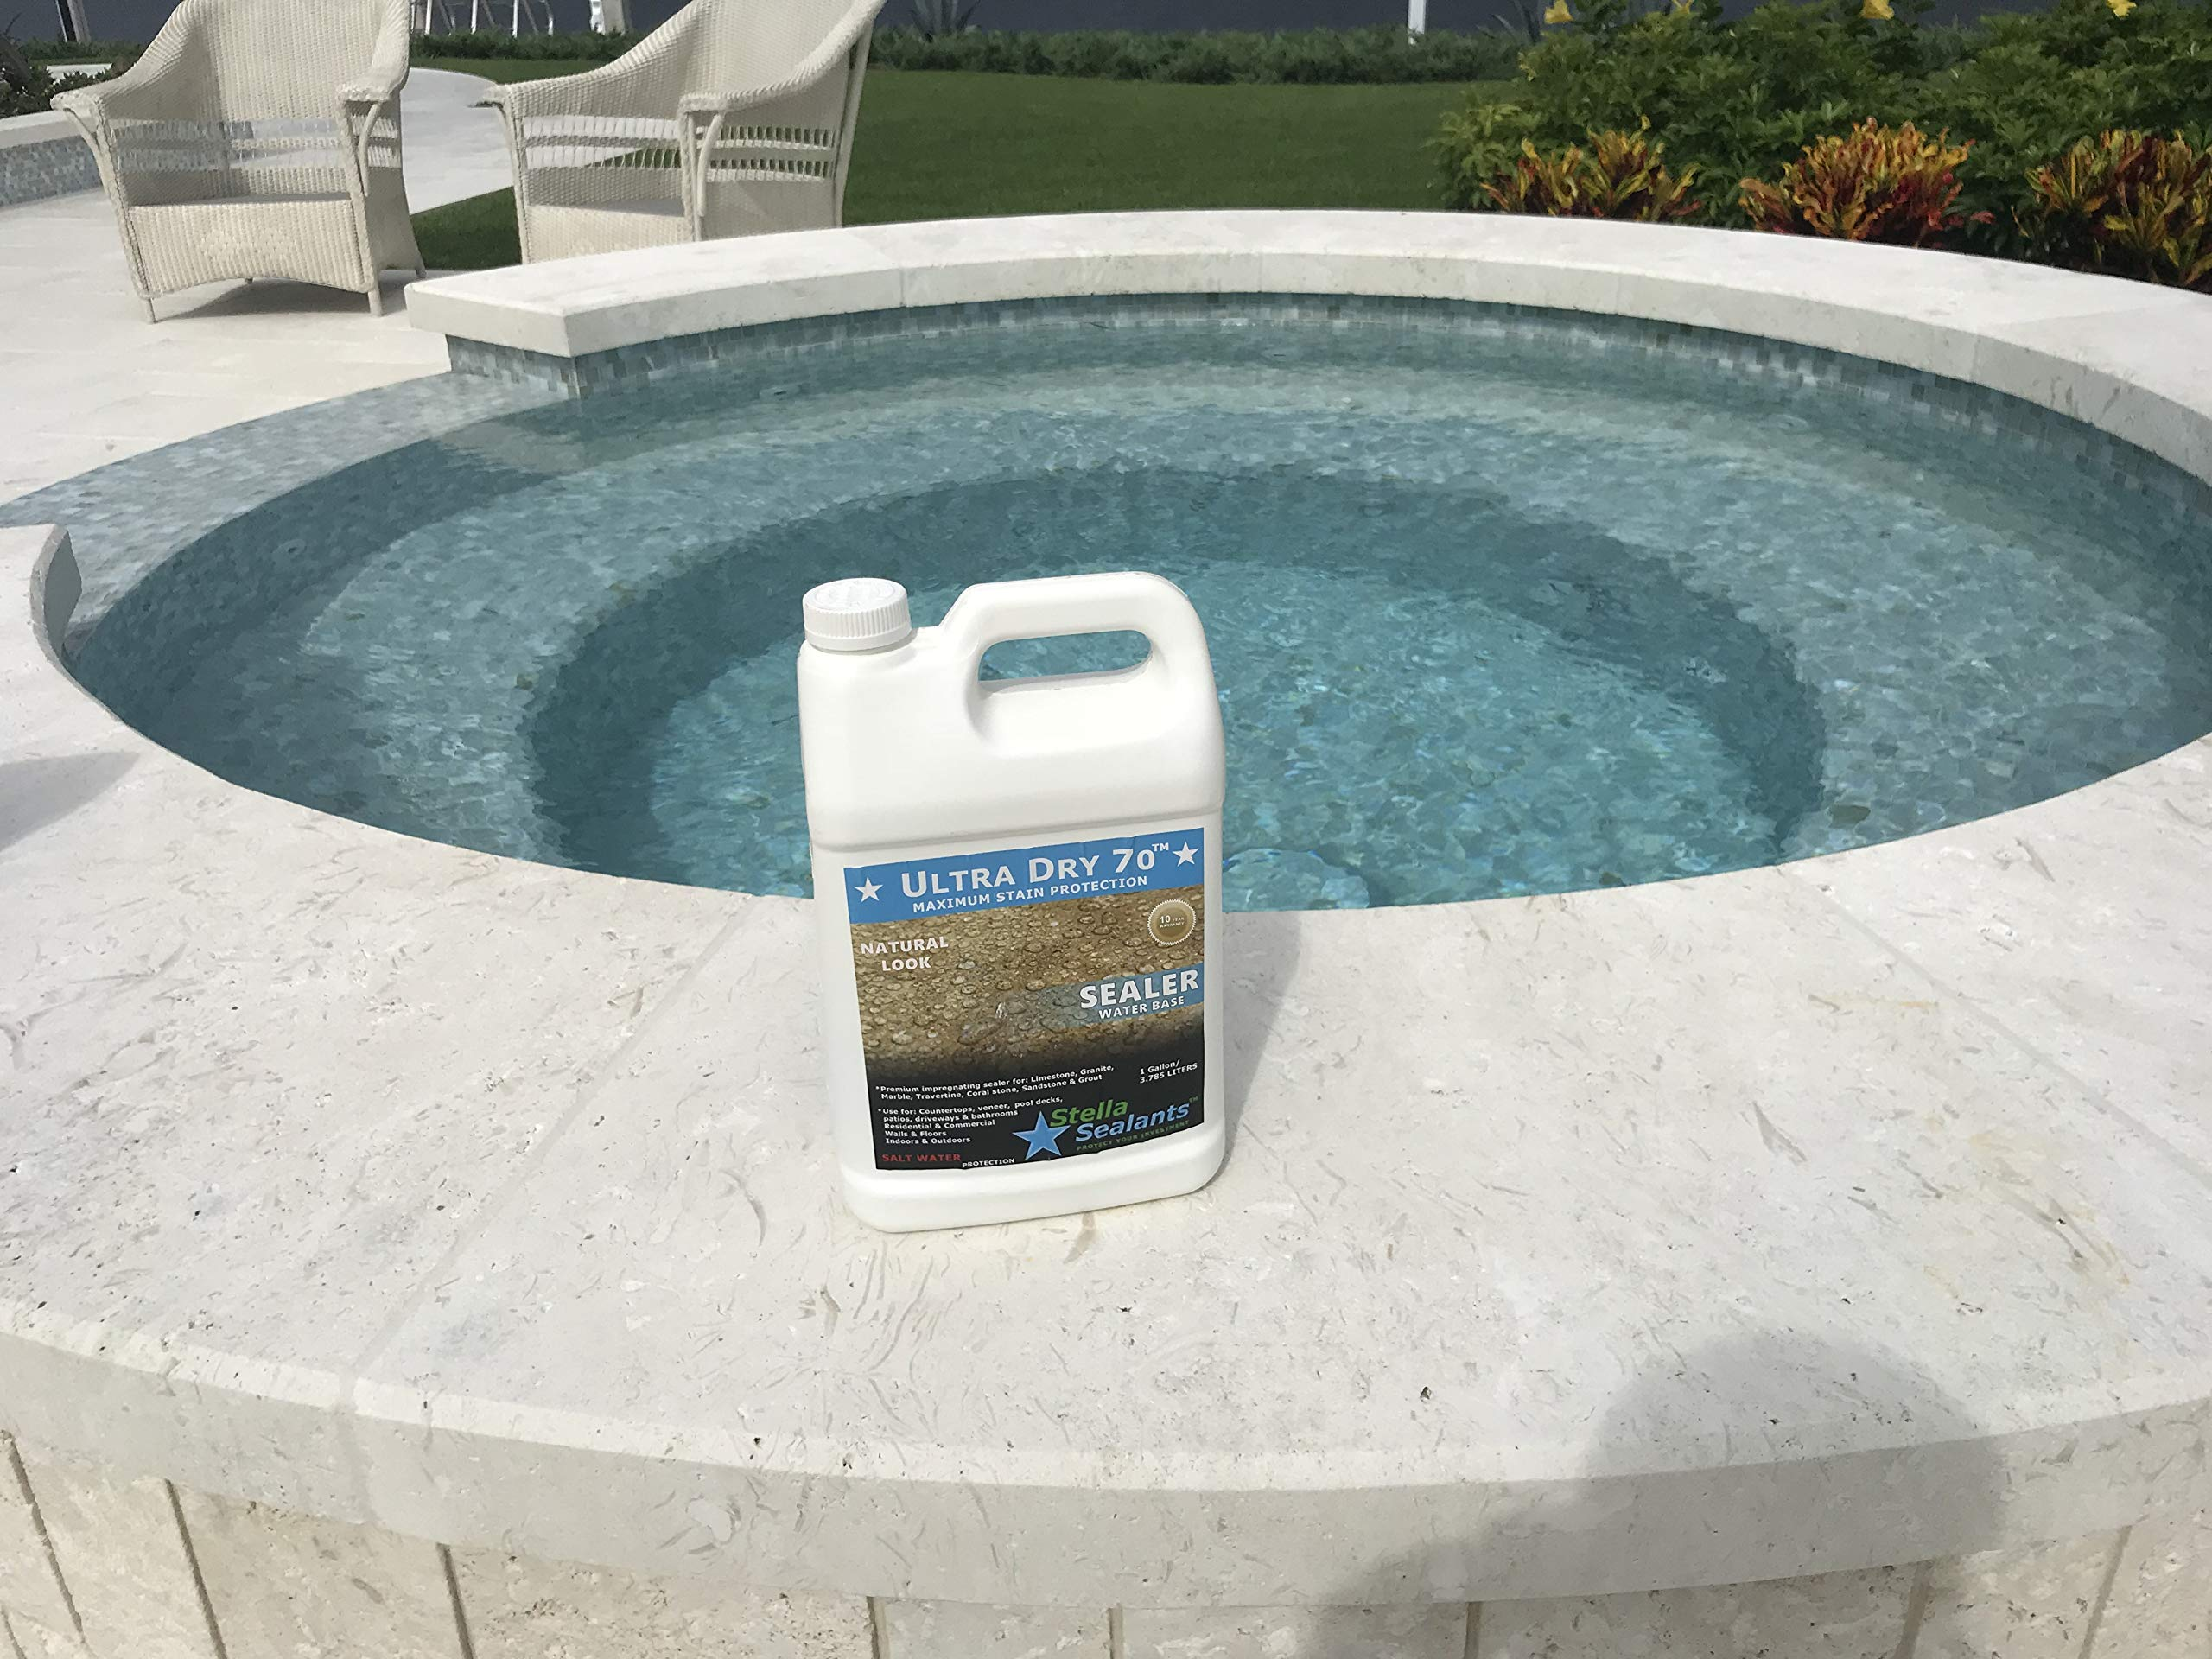 Ultra Dry 70 - Stone Sealer for Travertine Limestone Marble and Granite - Natural Look (Gallon) by Stella Sealants (Image #2)